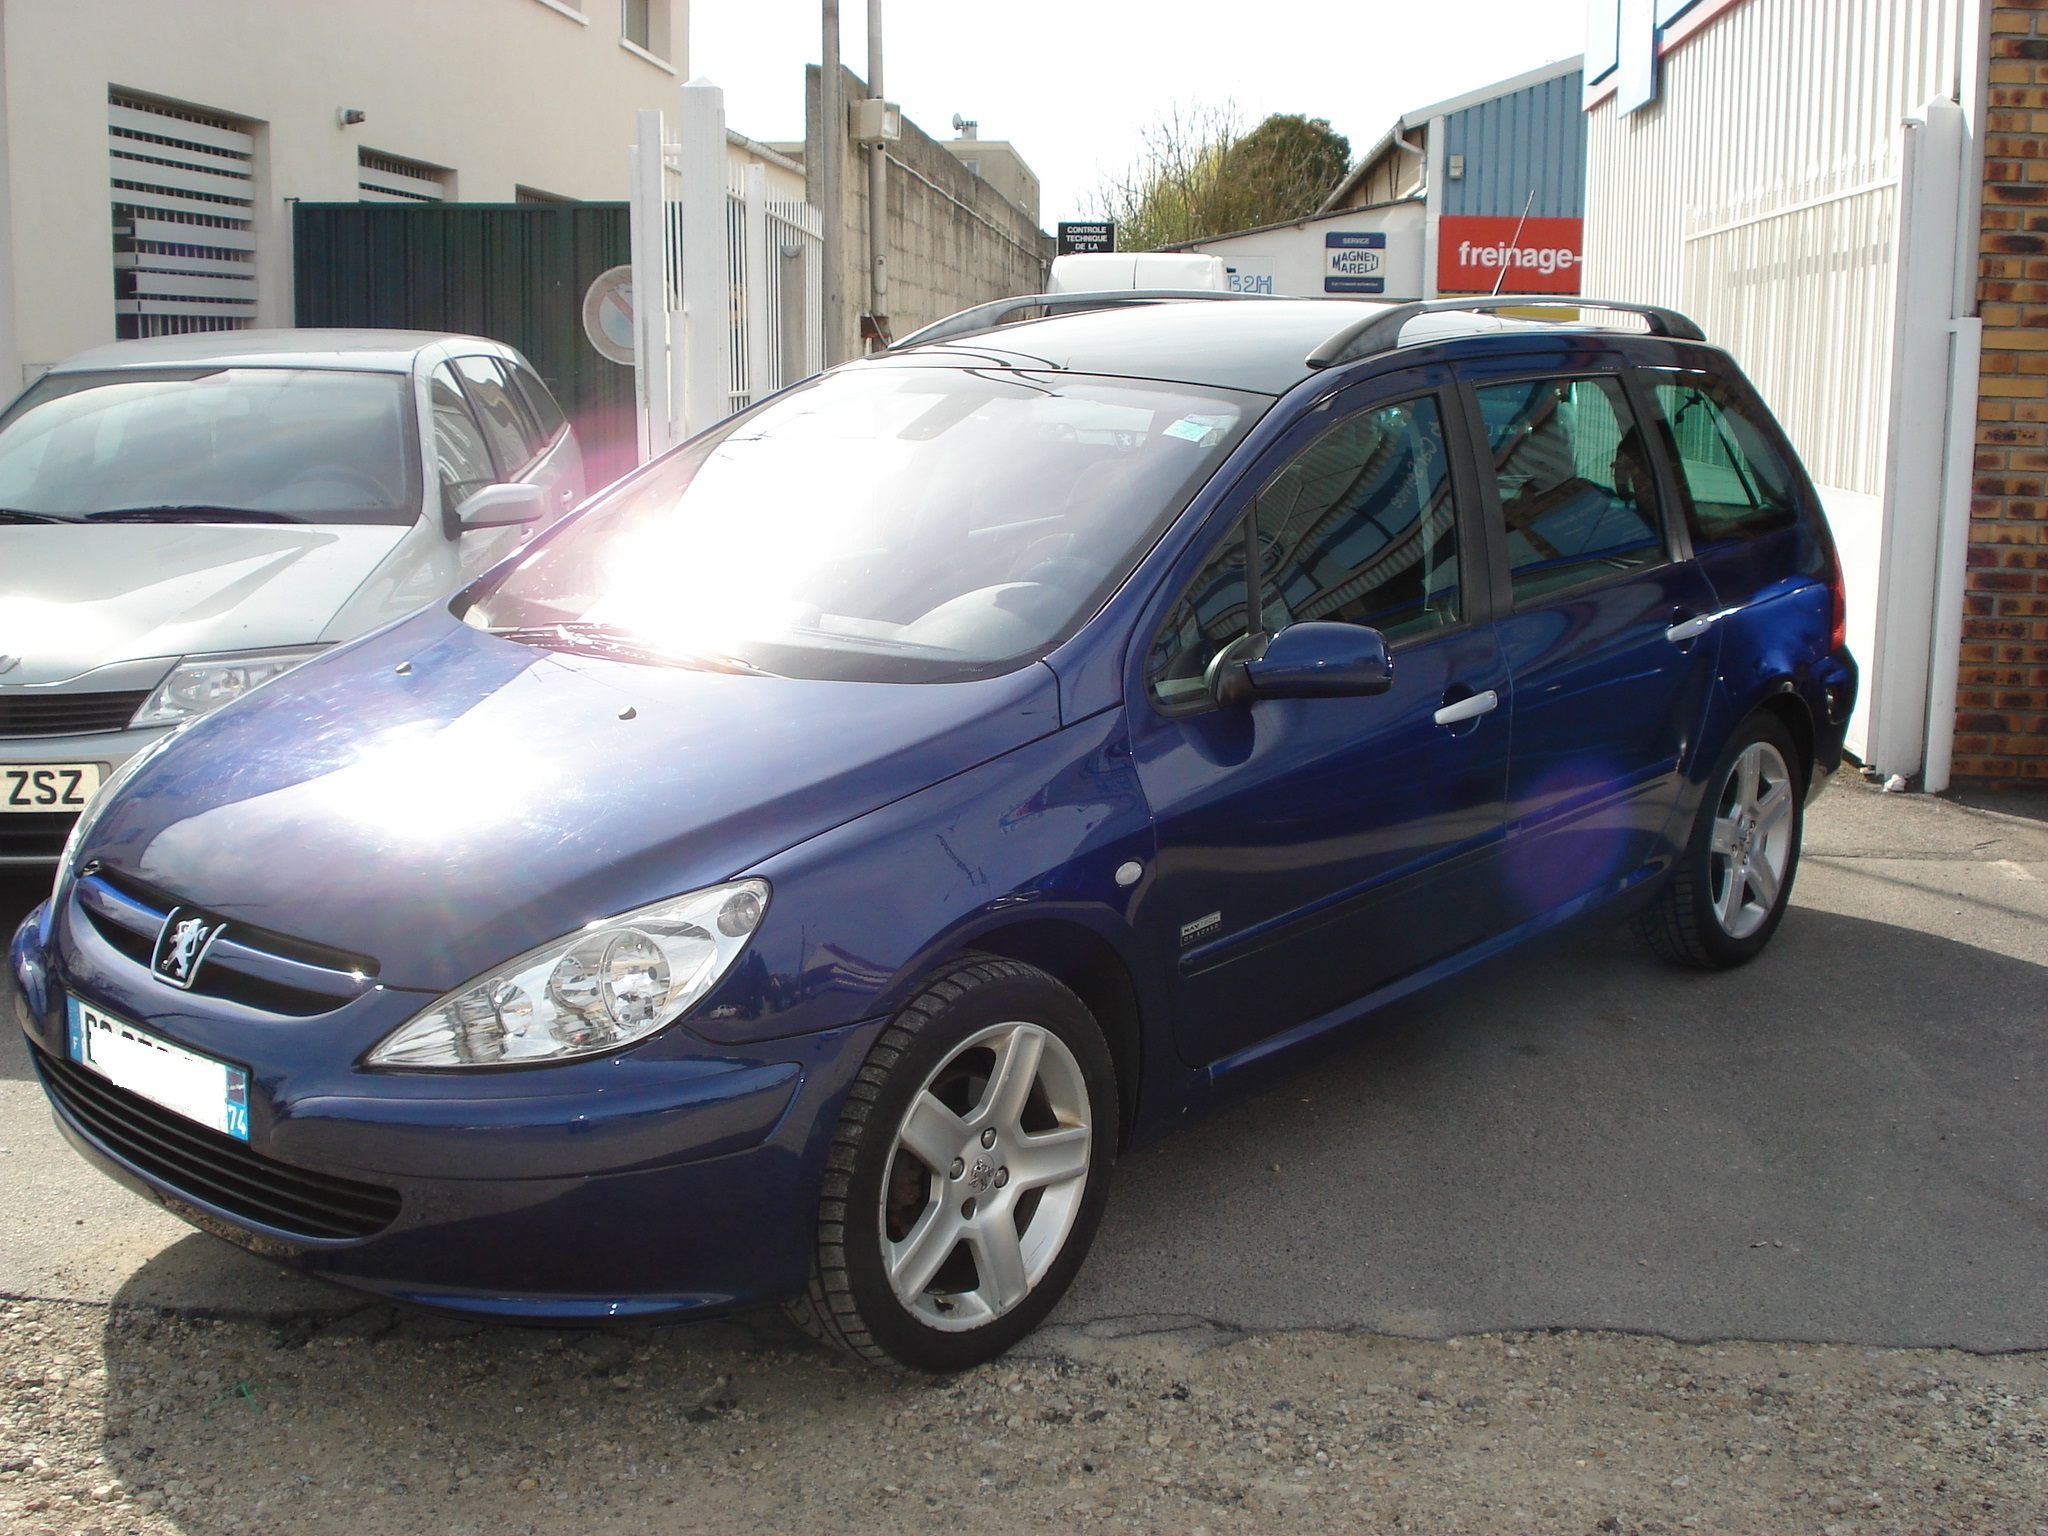 PEUGEOT 307 SW 2.0 HDI 110 FRENCH REG